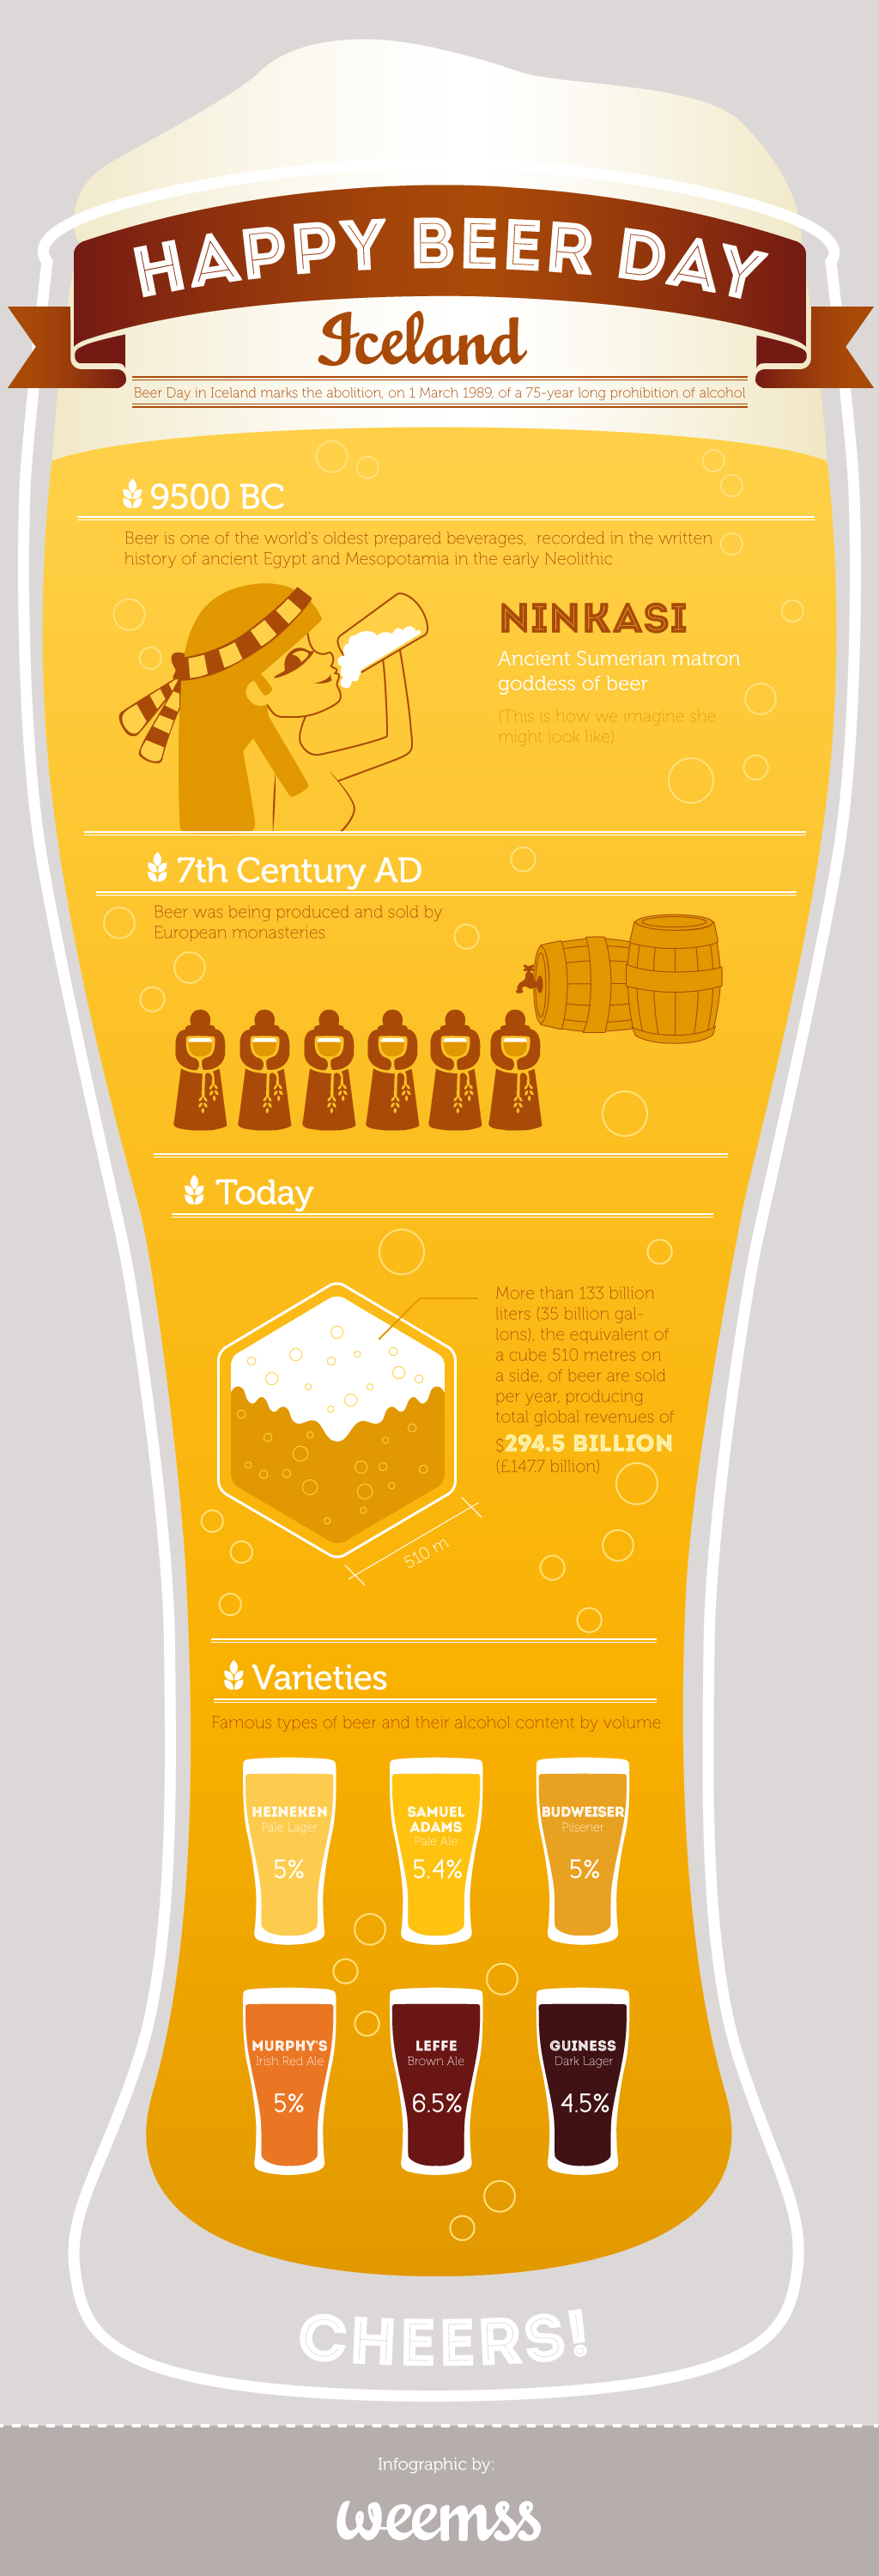 Iceland-beer-facts